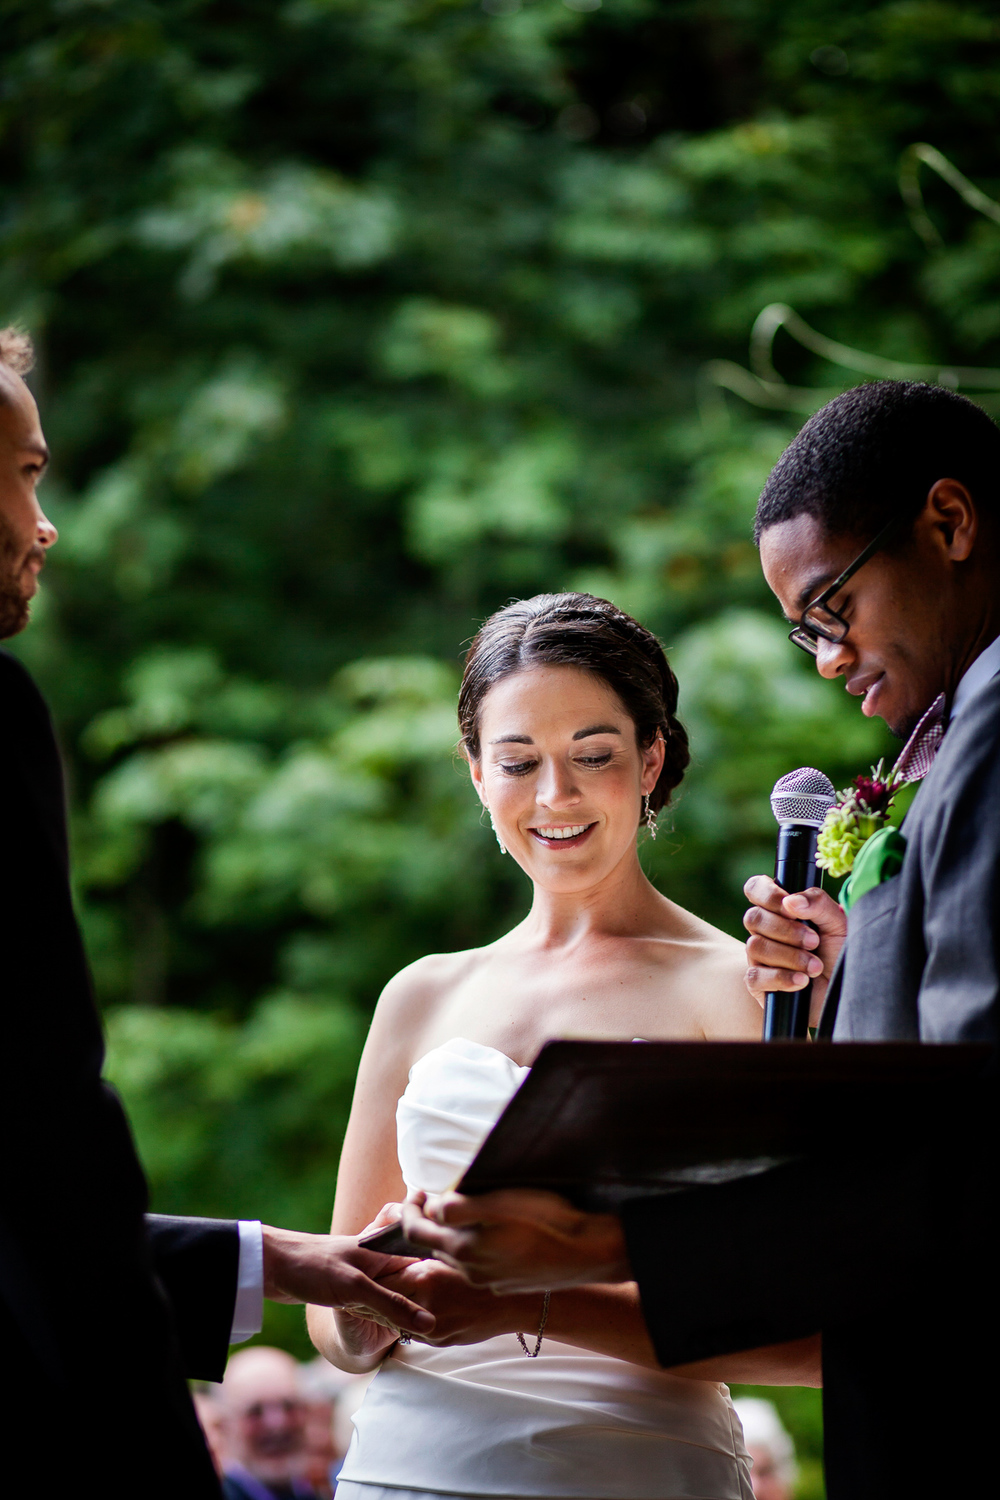 0047_olivia&Matt-outdoor-wedding-brandon-patoc-photography.jpg